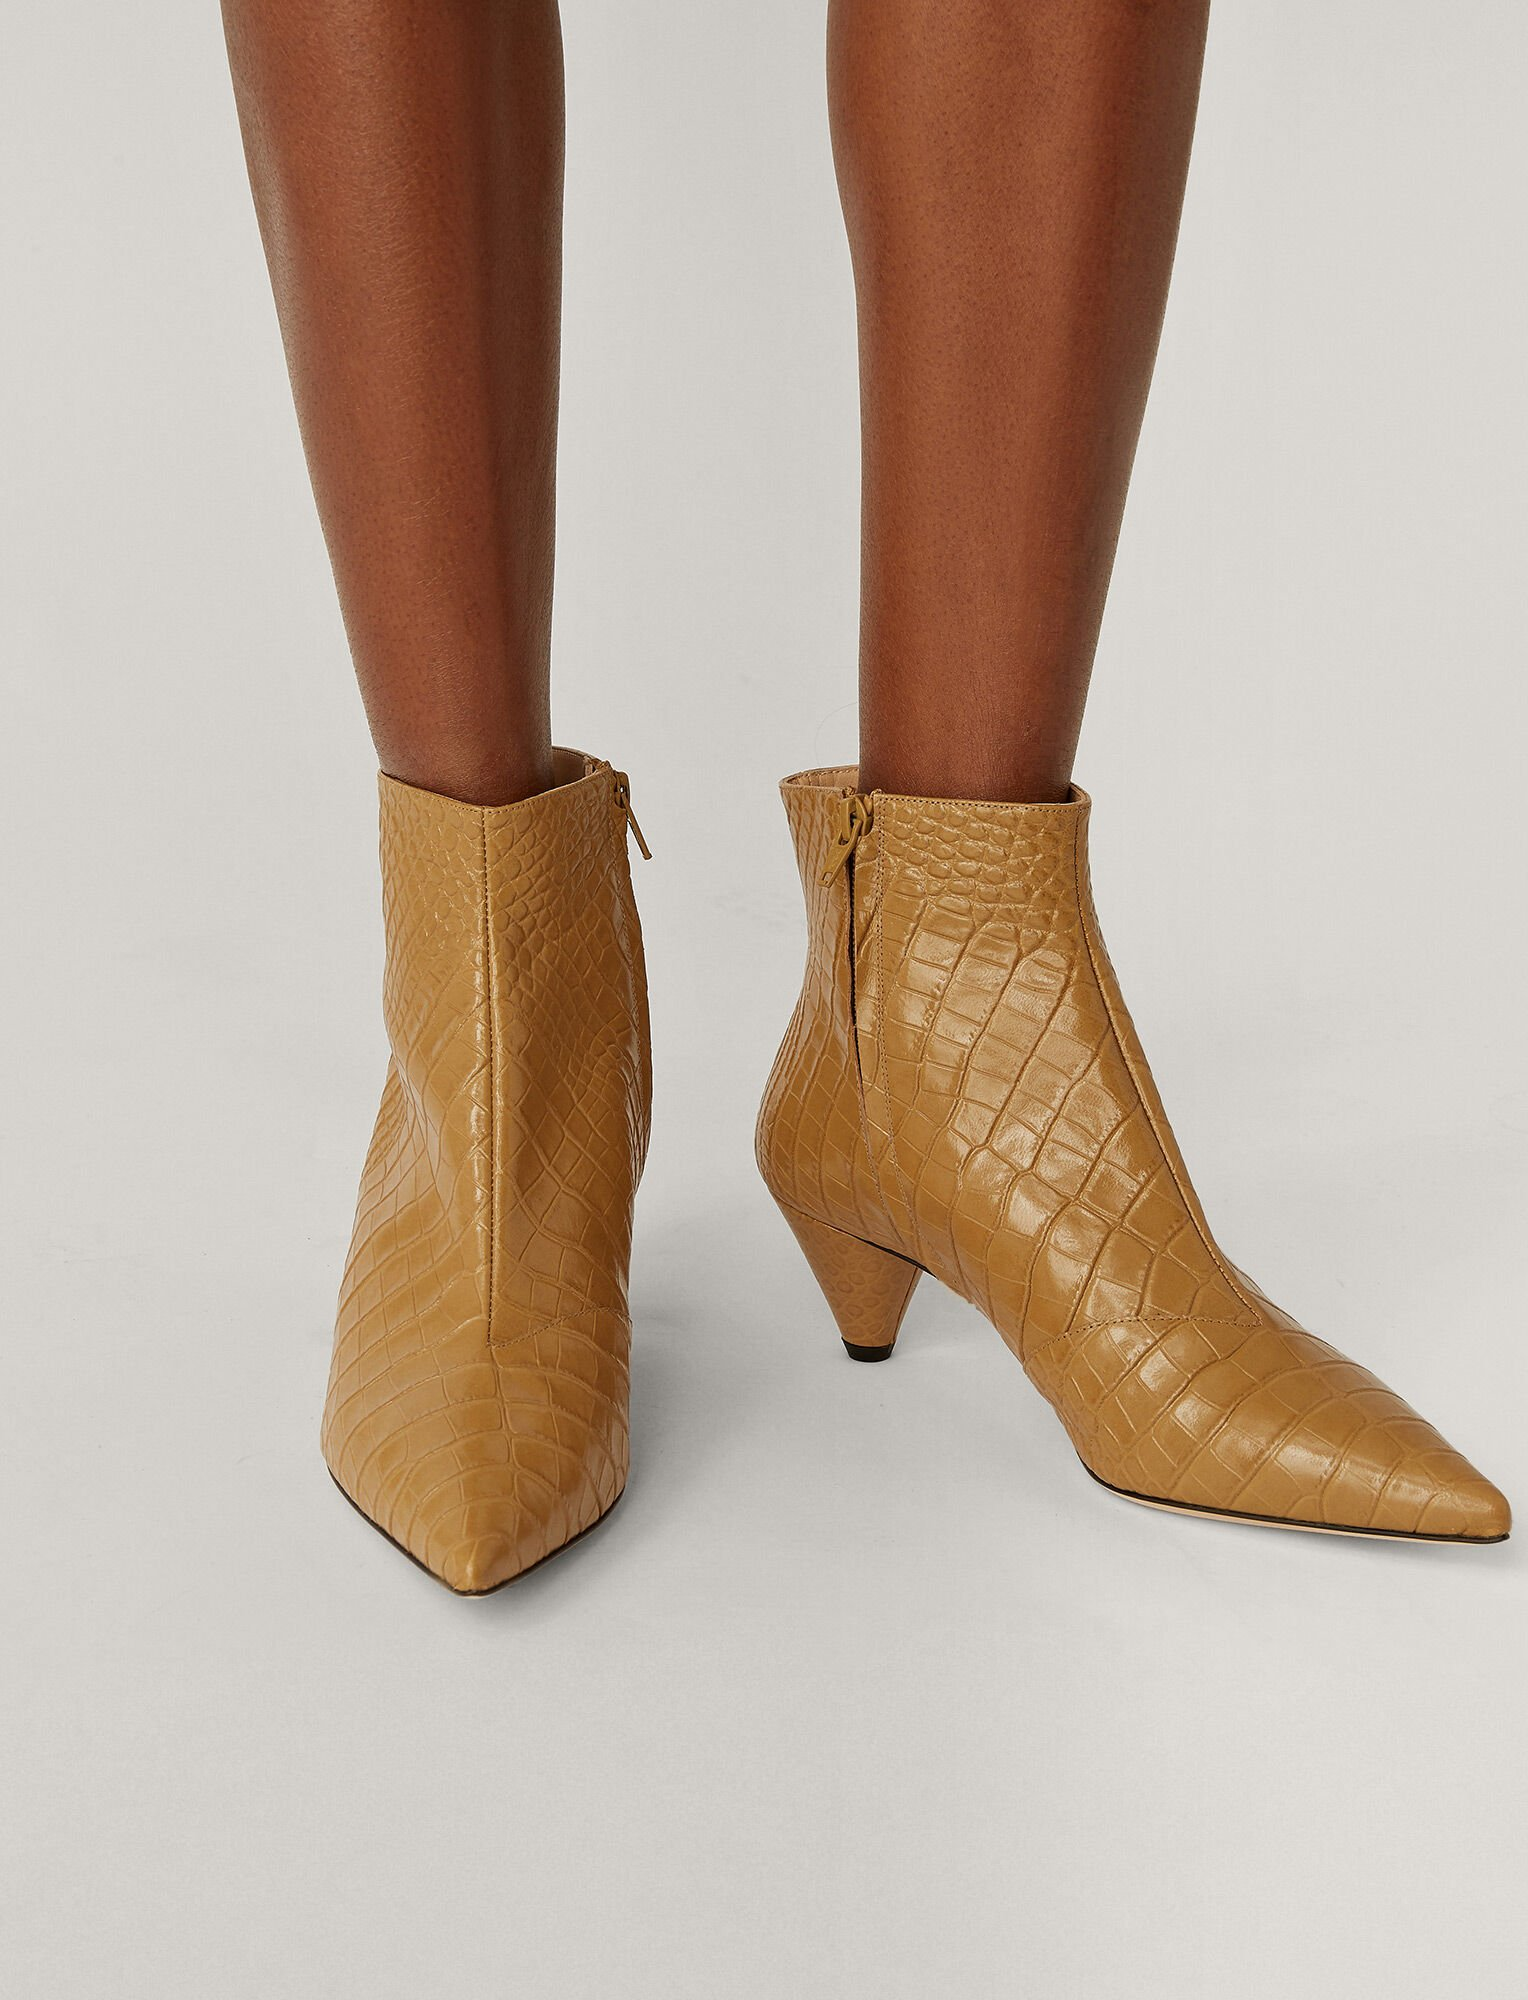 Joseph, Cone Heel Ankle Boot, in Dijon